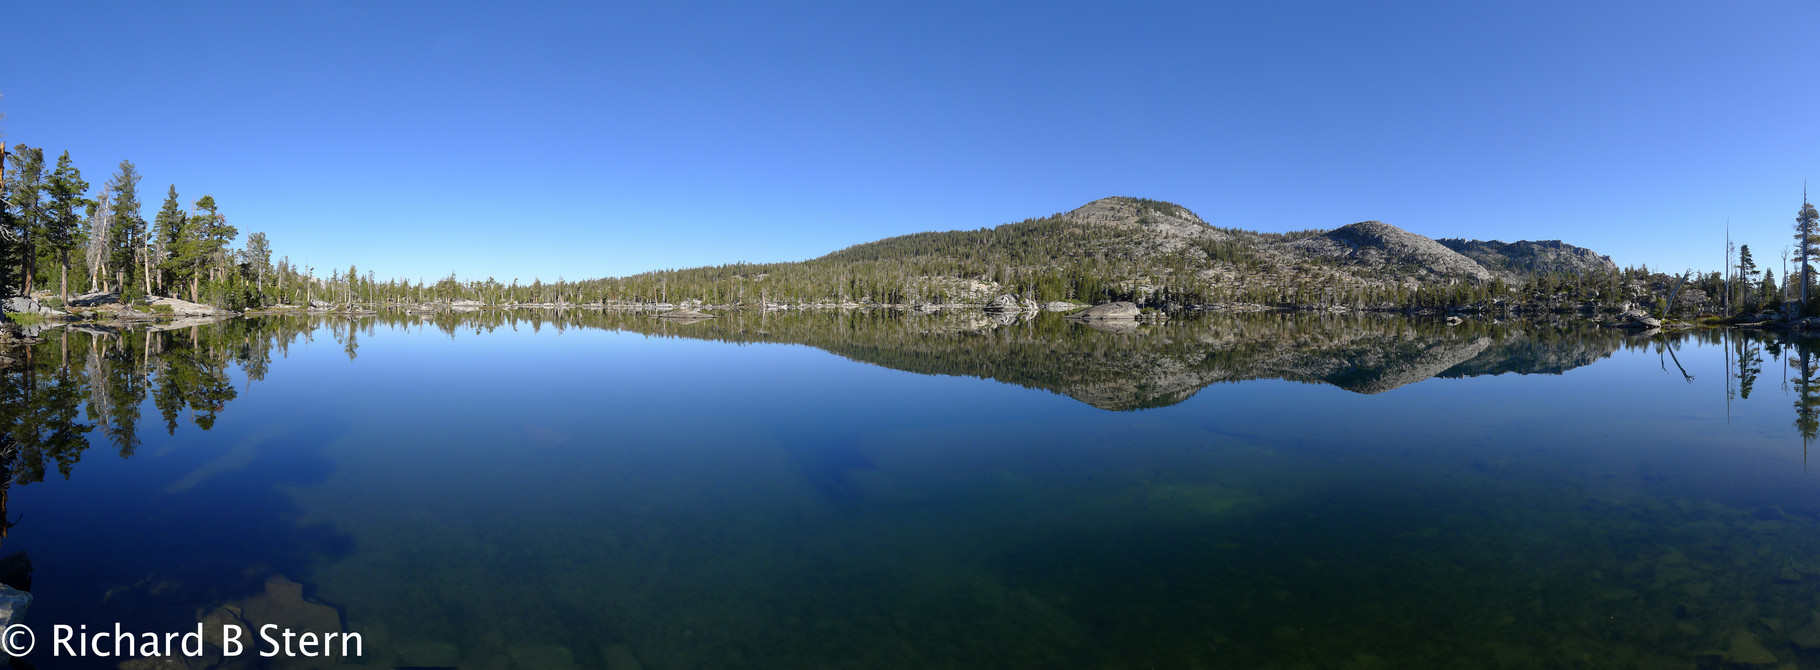 Middle Velma Lake-Desolation Wilderness Area